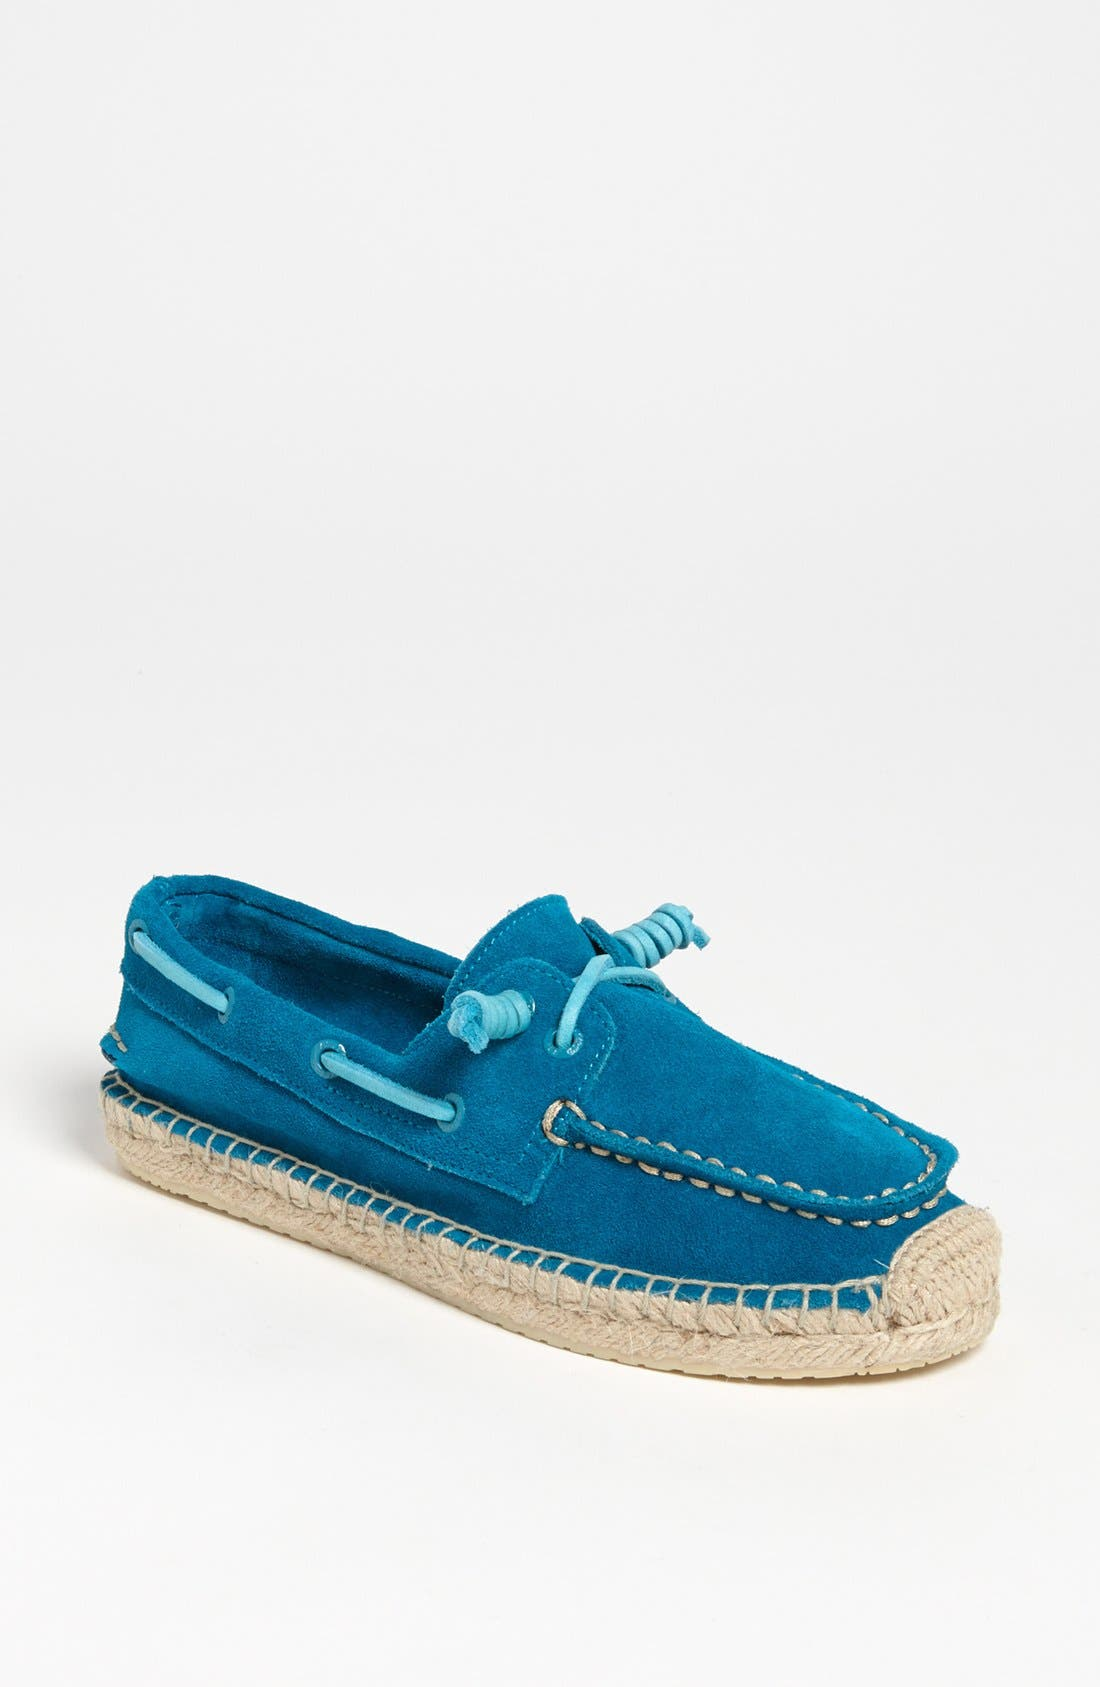 Main Image - Sperry® Top-Sider for Jeffrey 'Authentic Original' Espadrille